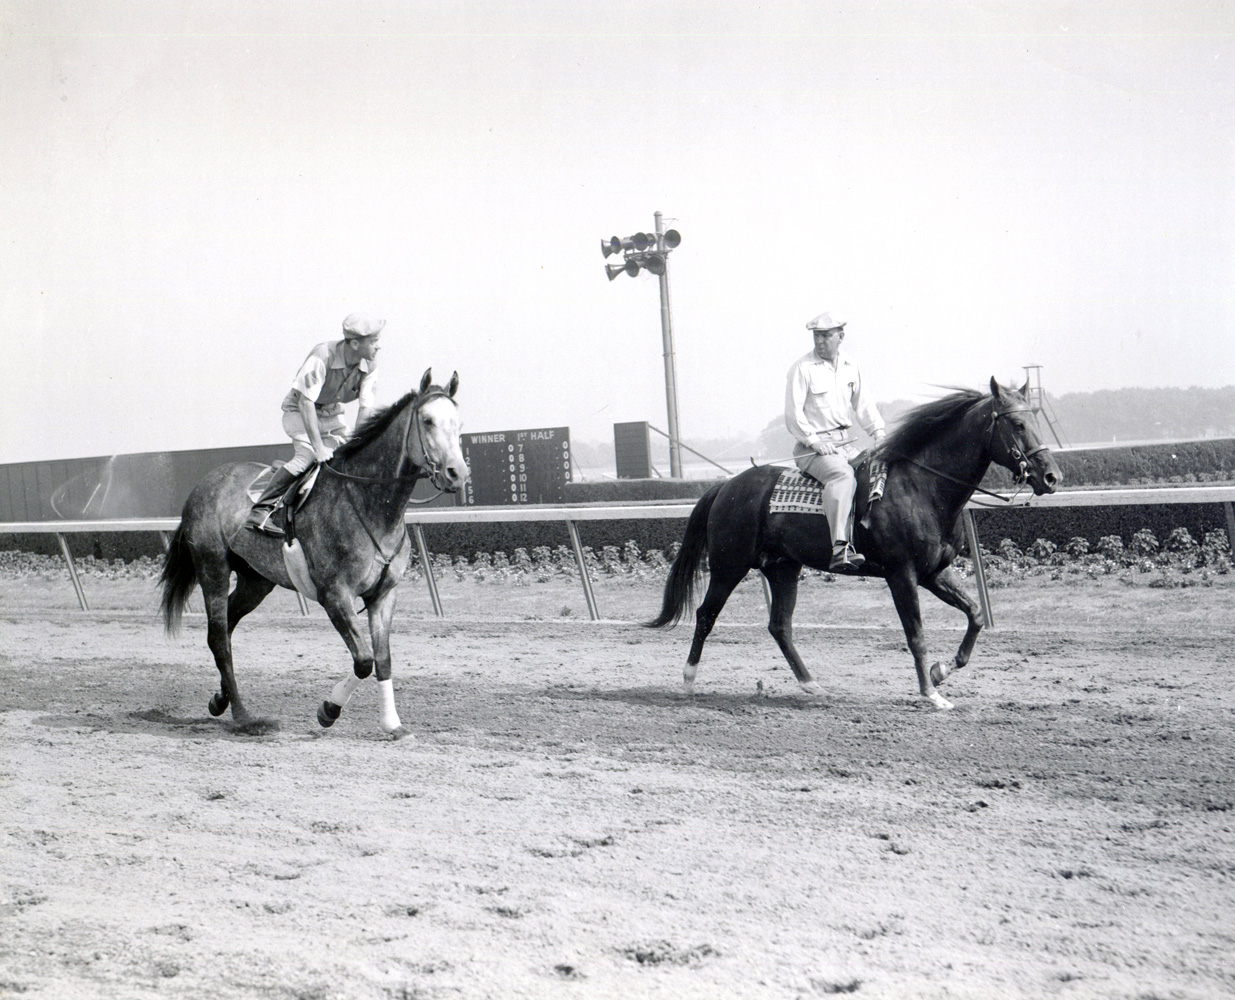 William C. Winfrey on a pony (on right) with Native Dancer and exercise rider B. Everson on the track (Museum Collection)